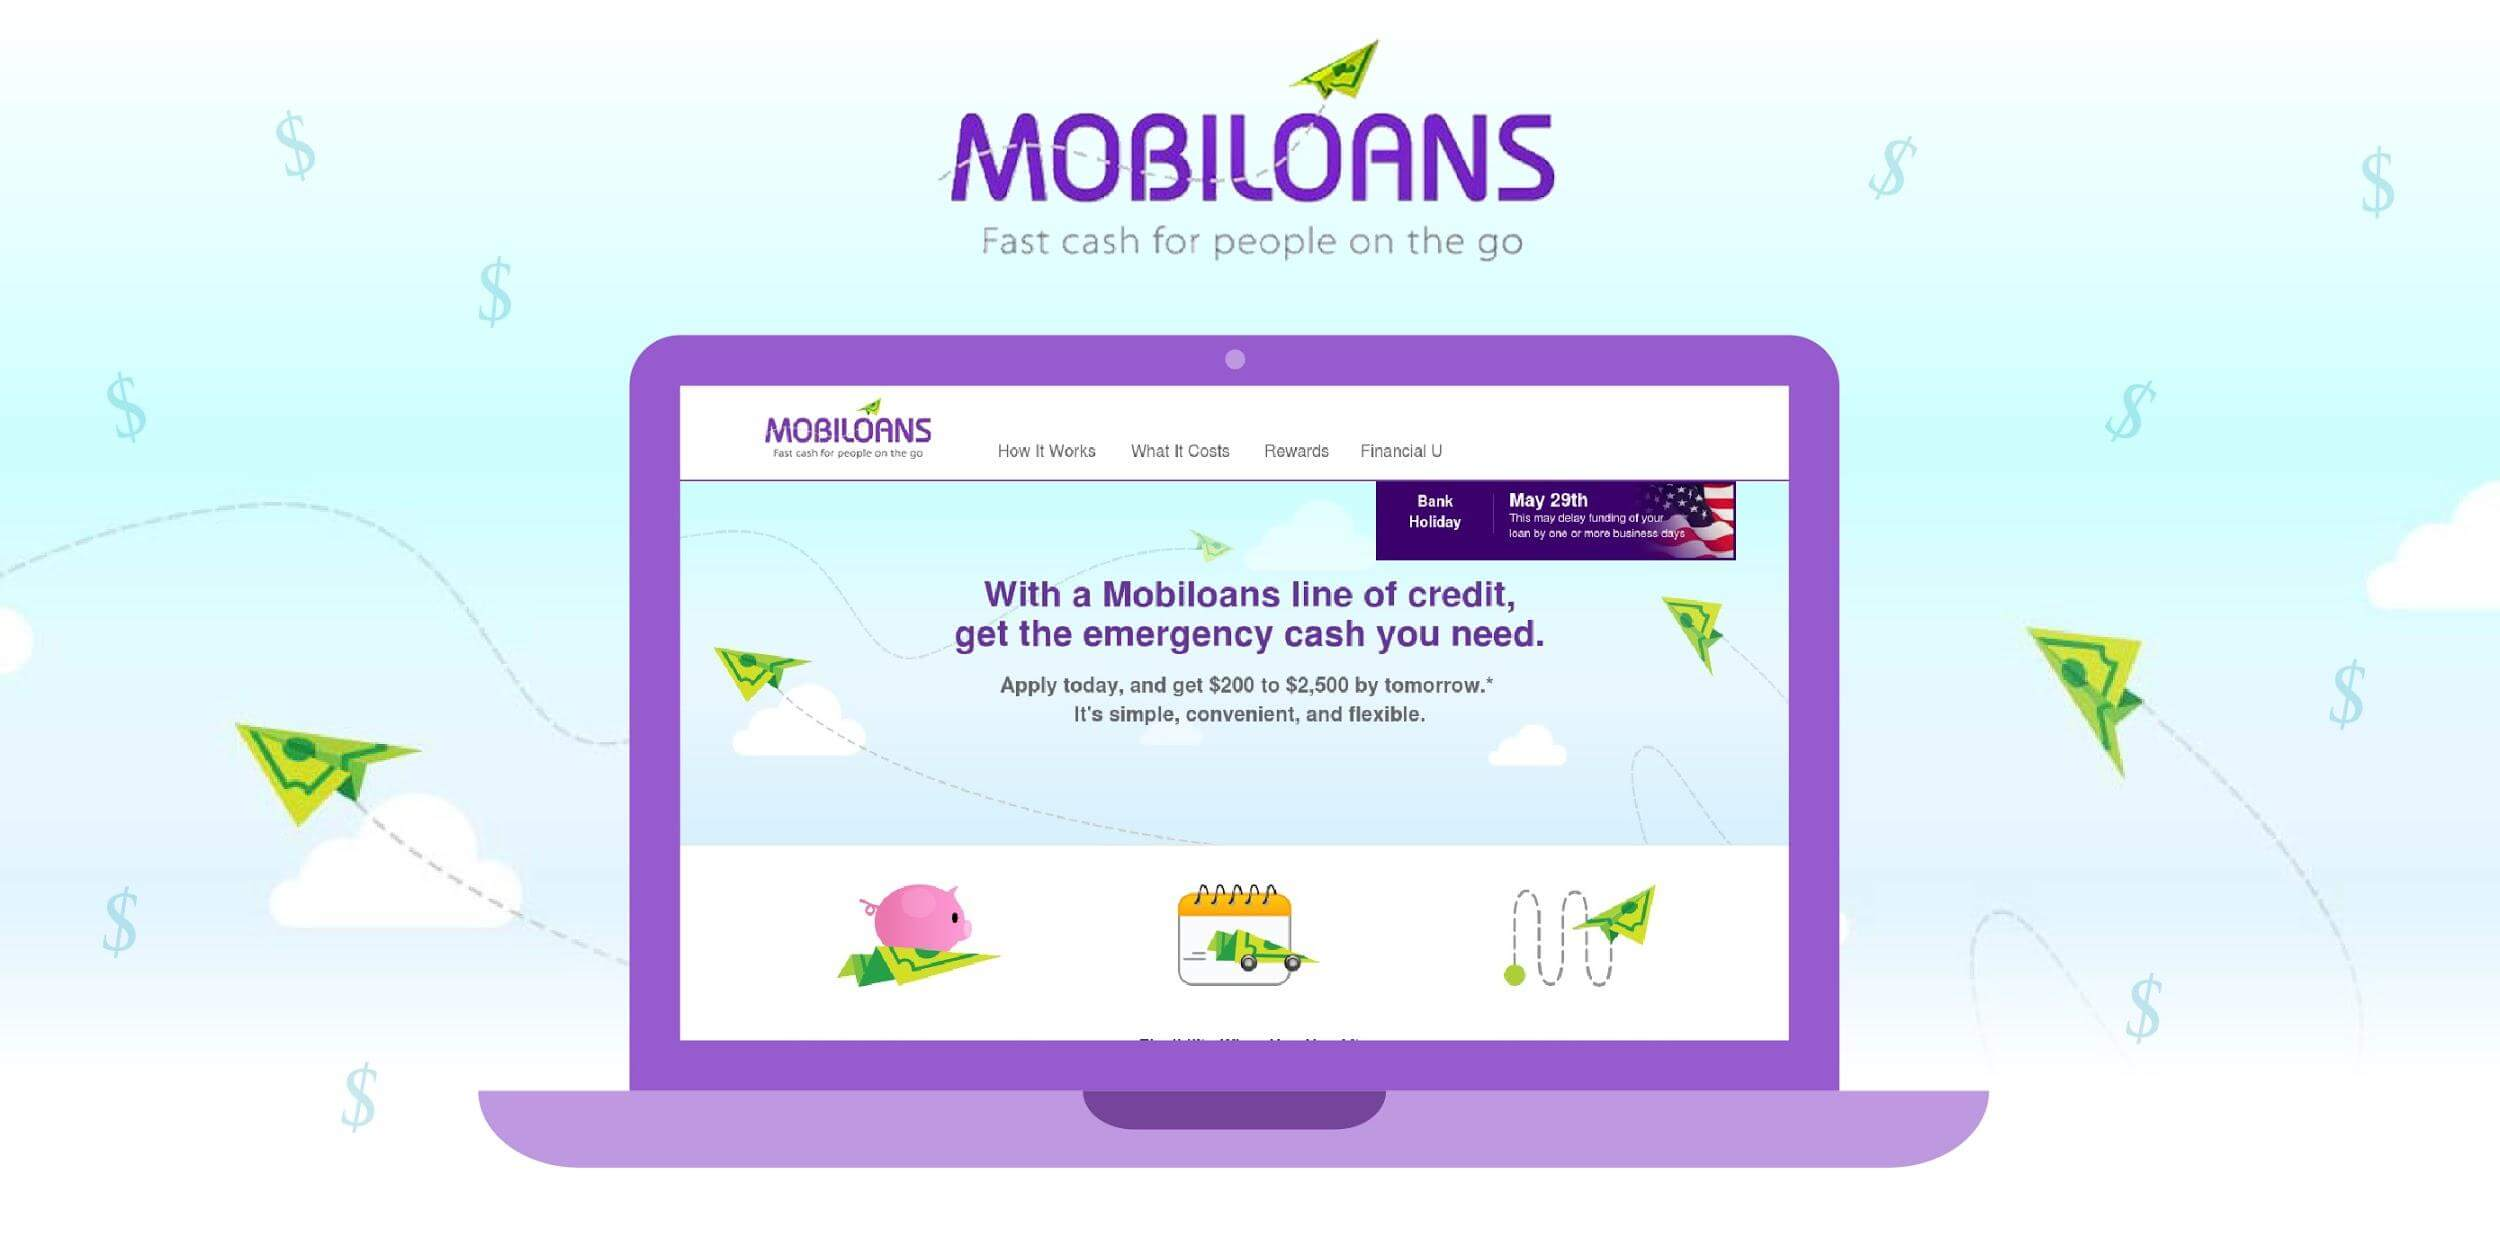 mobiloans-featured-0.jpg